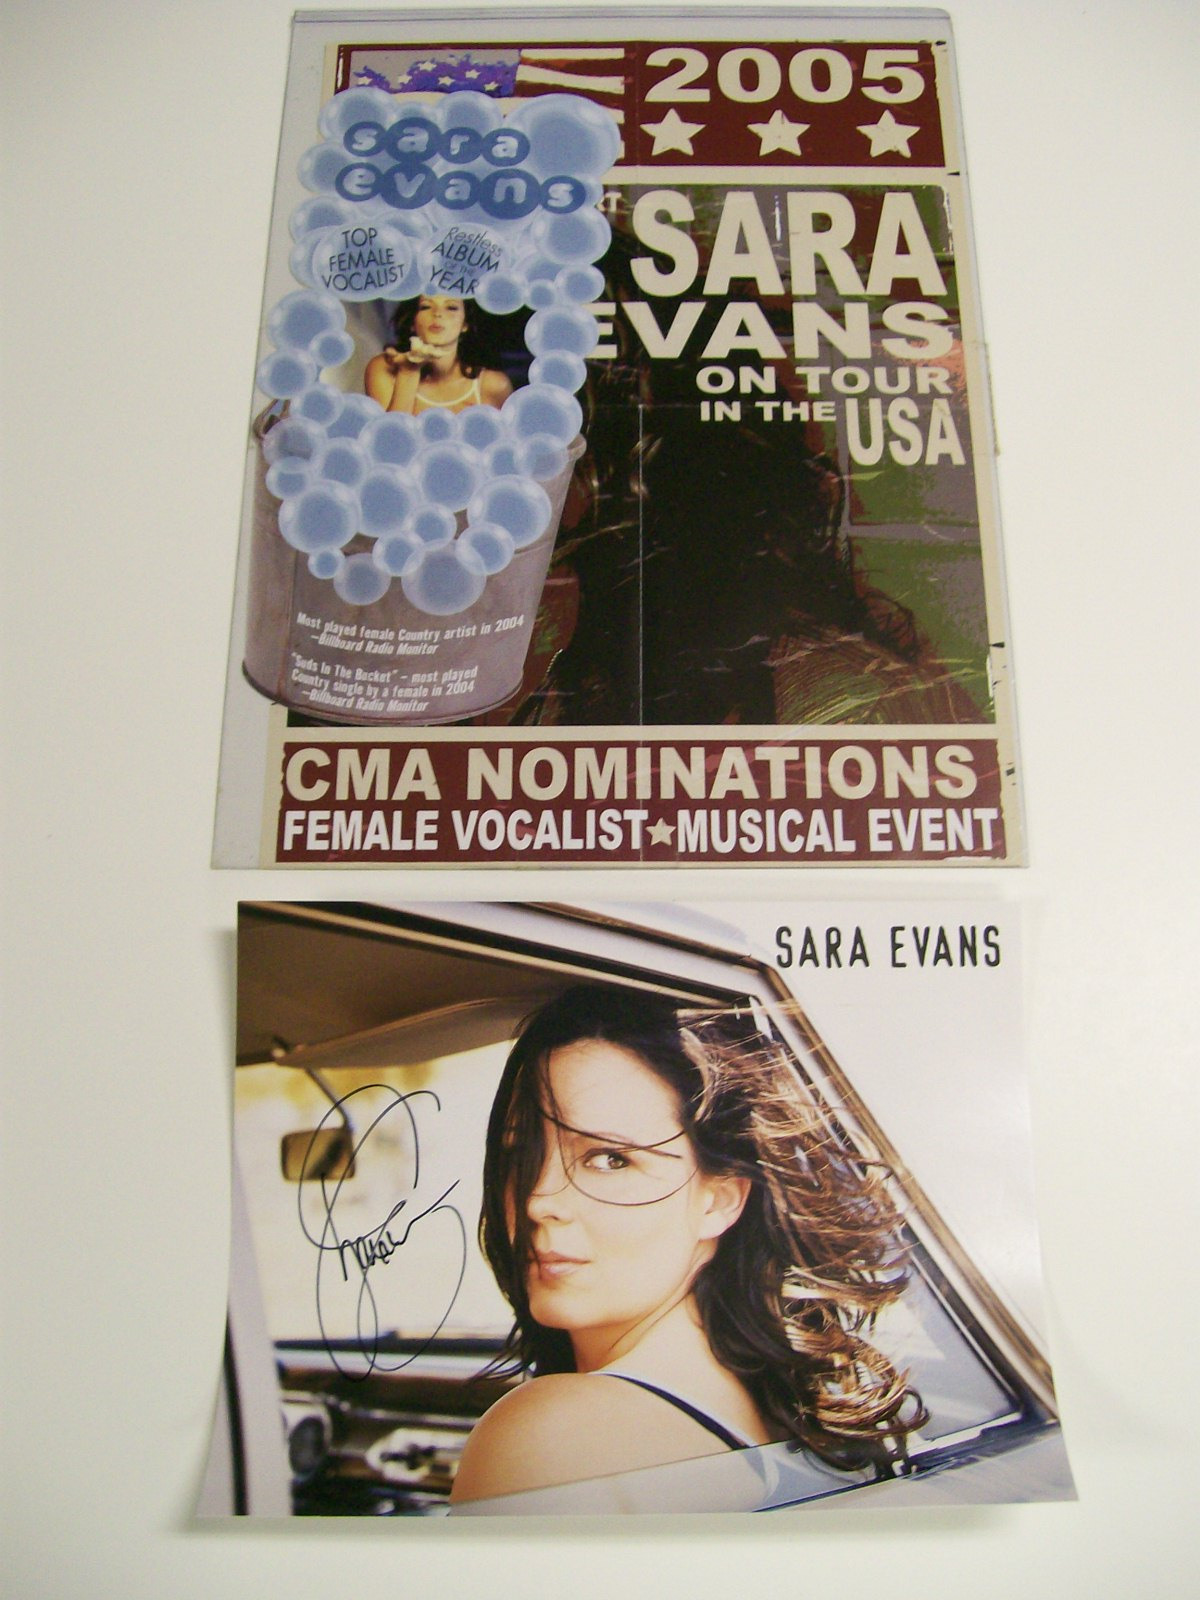 SARA EVANS 2005 #1 TOUR POSTER & AUTOGRAPHED PHOTO